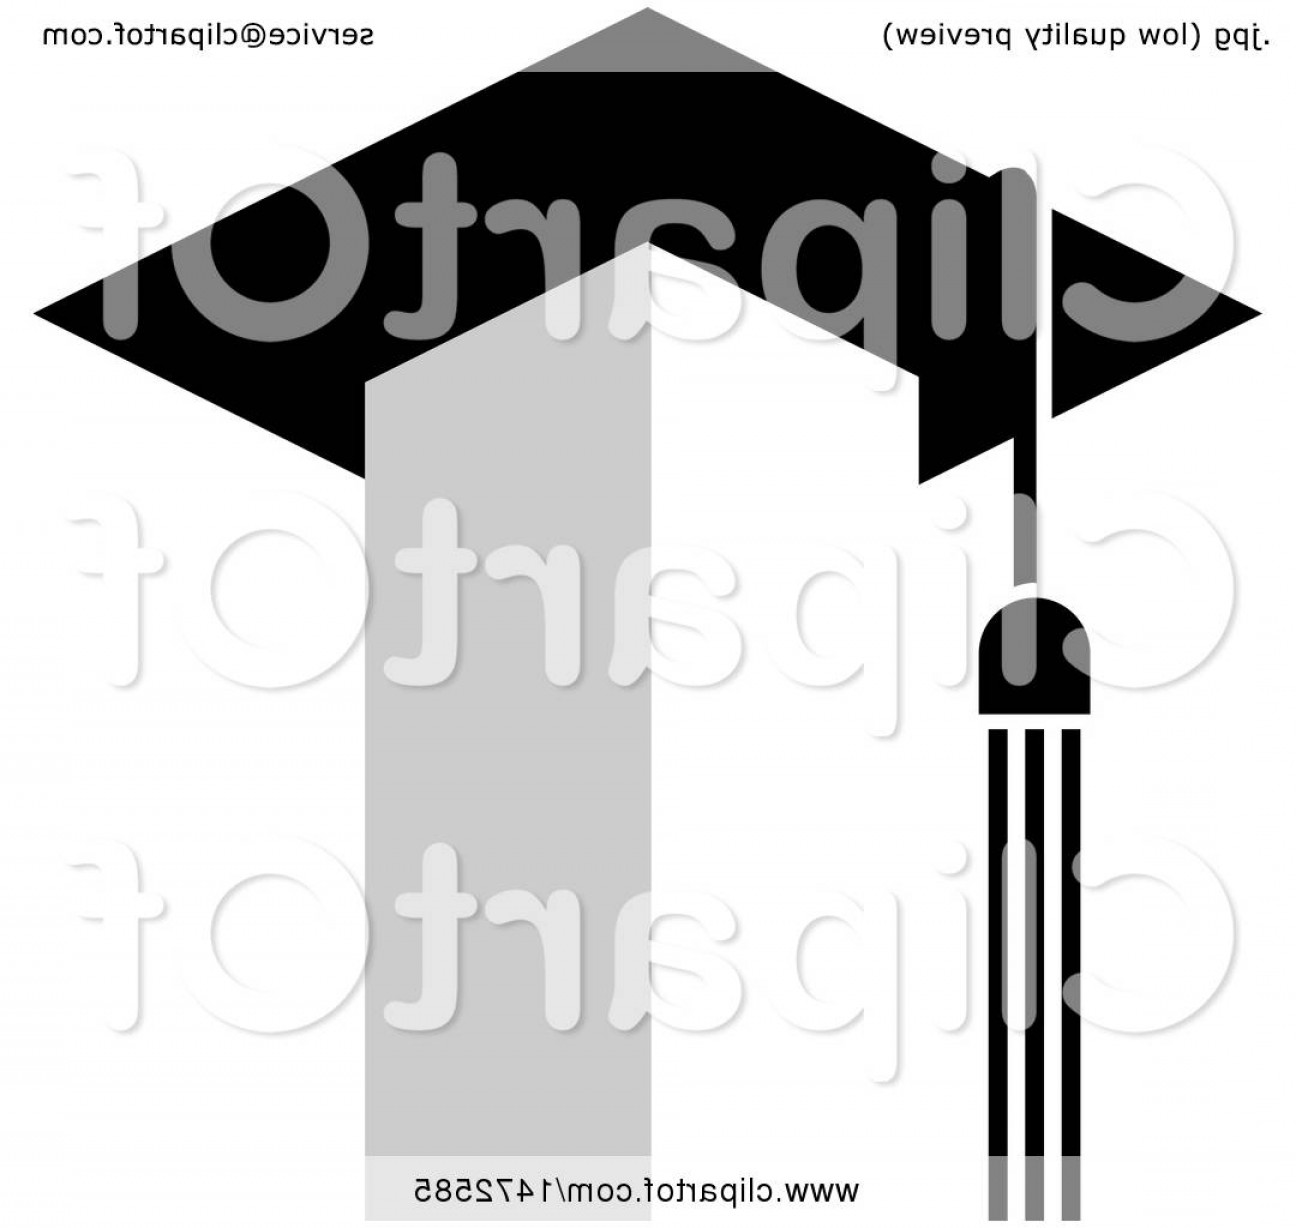 Tassel Vector: Tower With A Tassel And Graduation Cap Roof